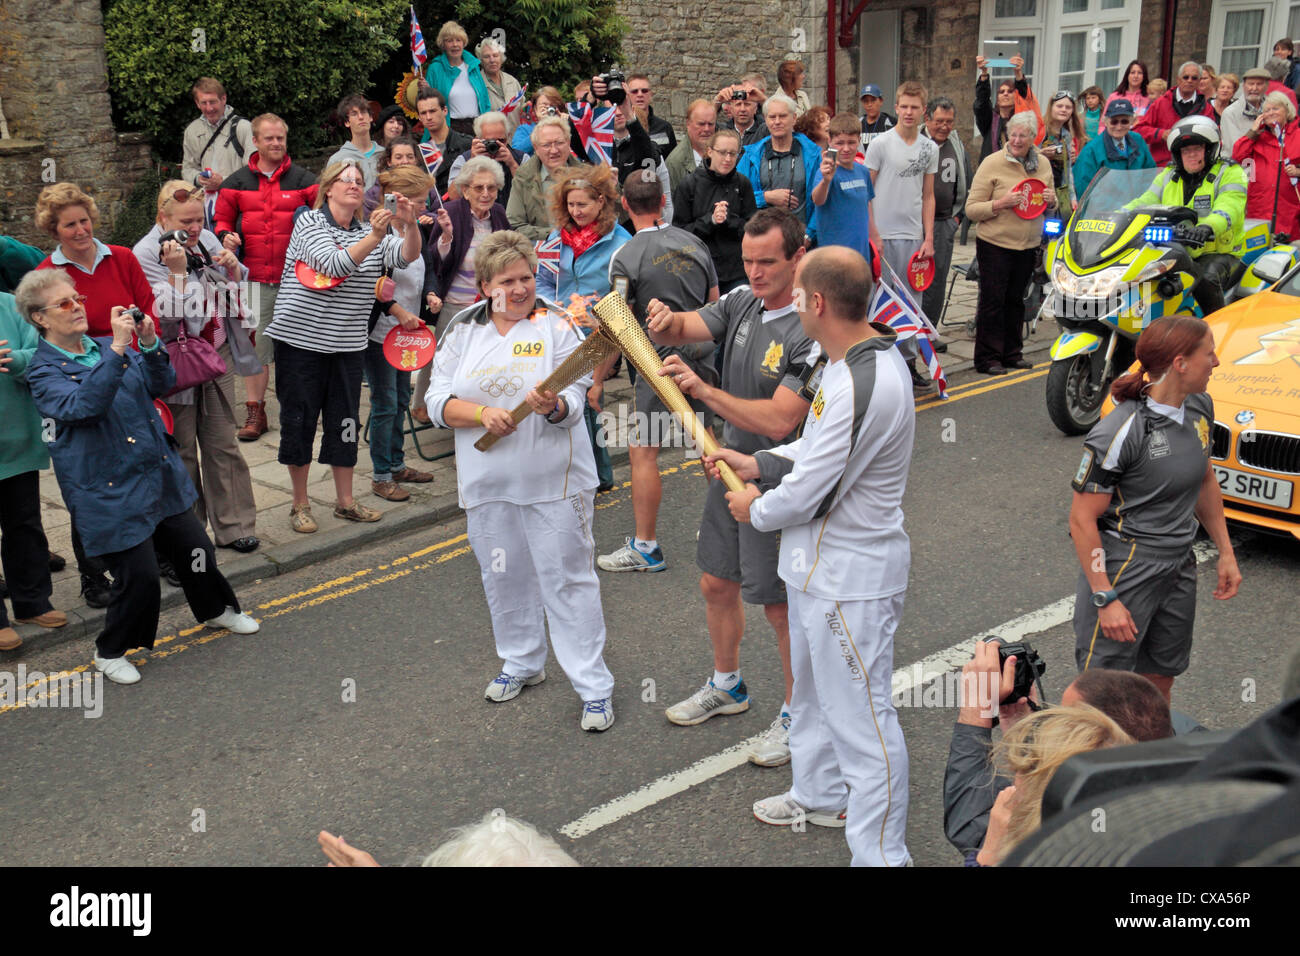 Handover point of the 2012 Olympic Games torch relay in Corfe Castle, Dorset, UK. (13th July 2012) - Stock Image